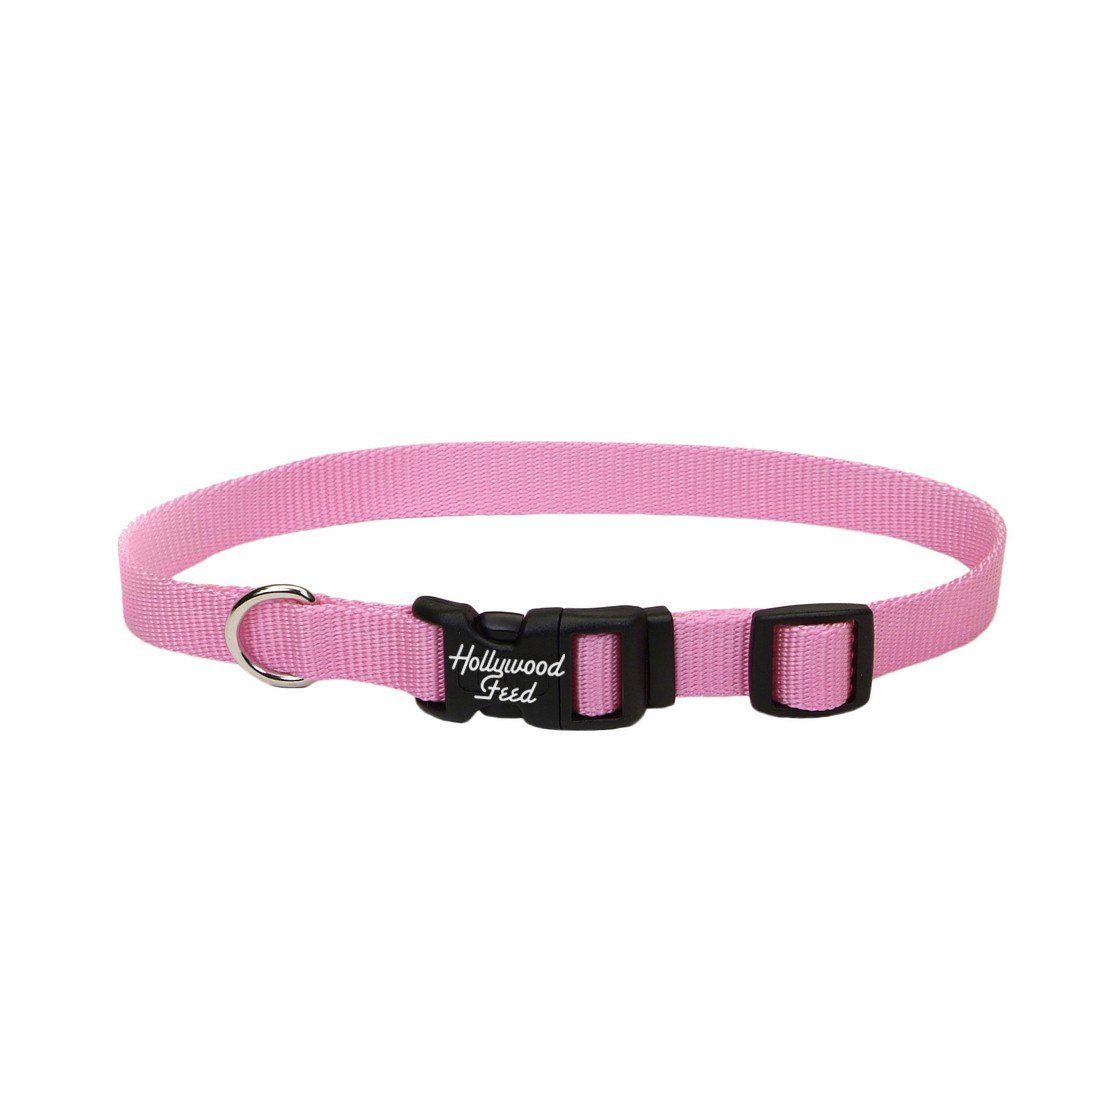 hollywood-feed-nylon-collar-pink